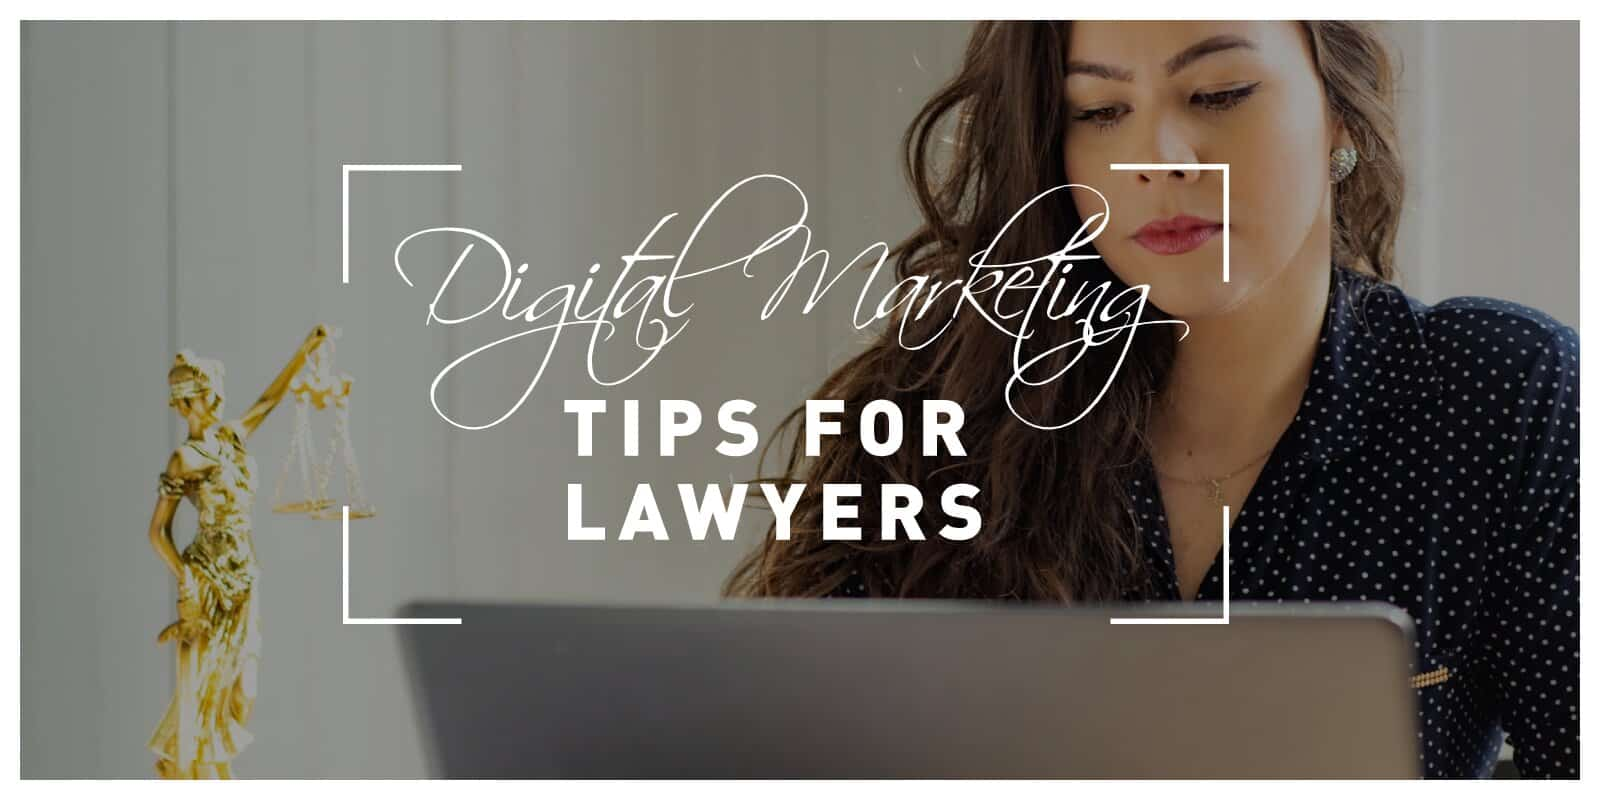 Top Digital Marketing Tips for Lawyers